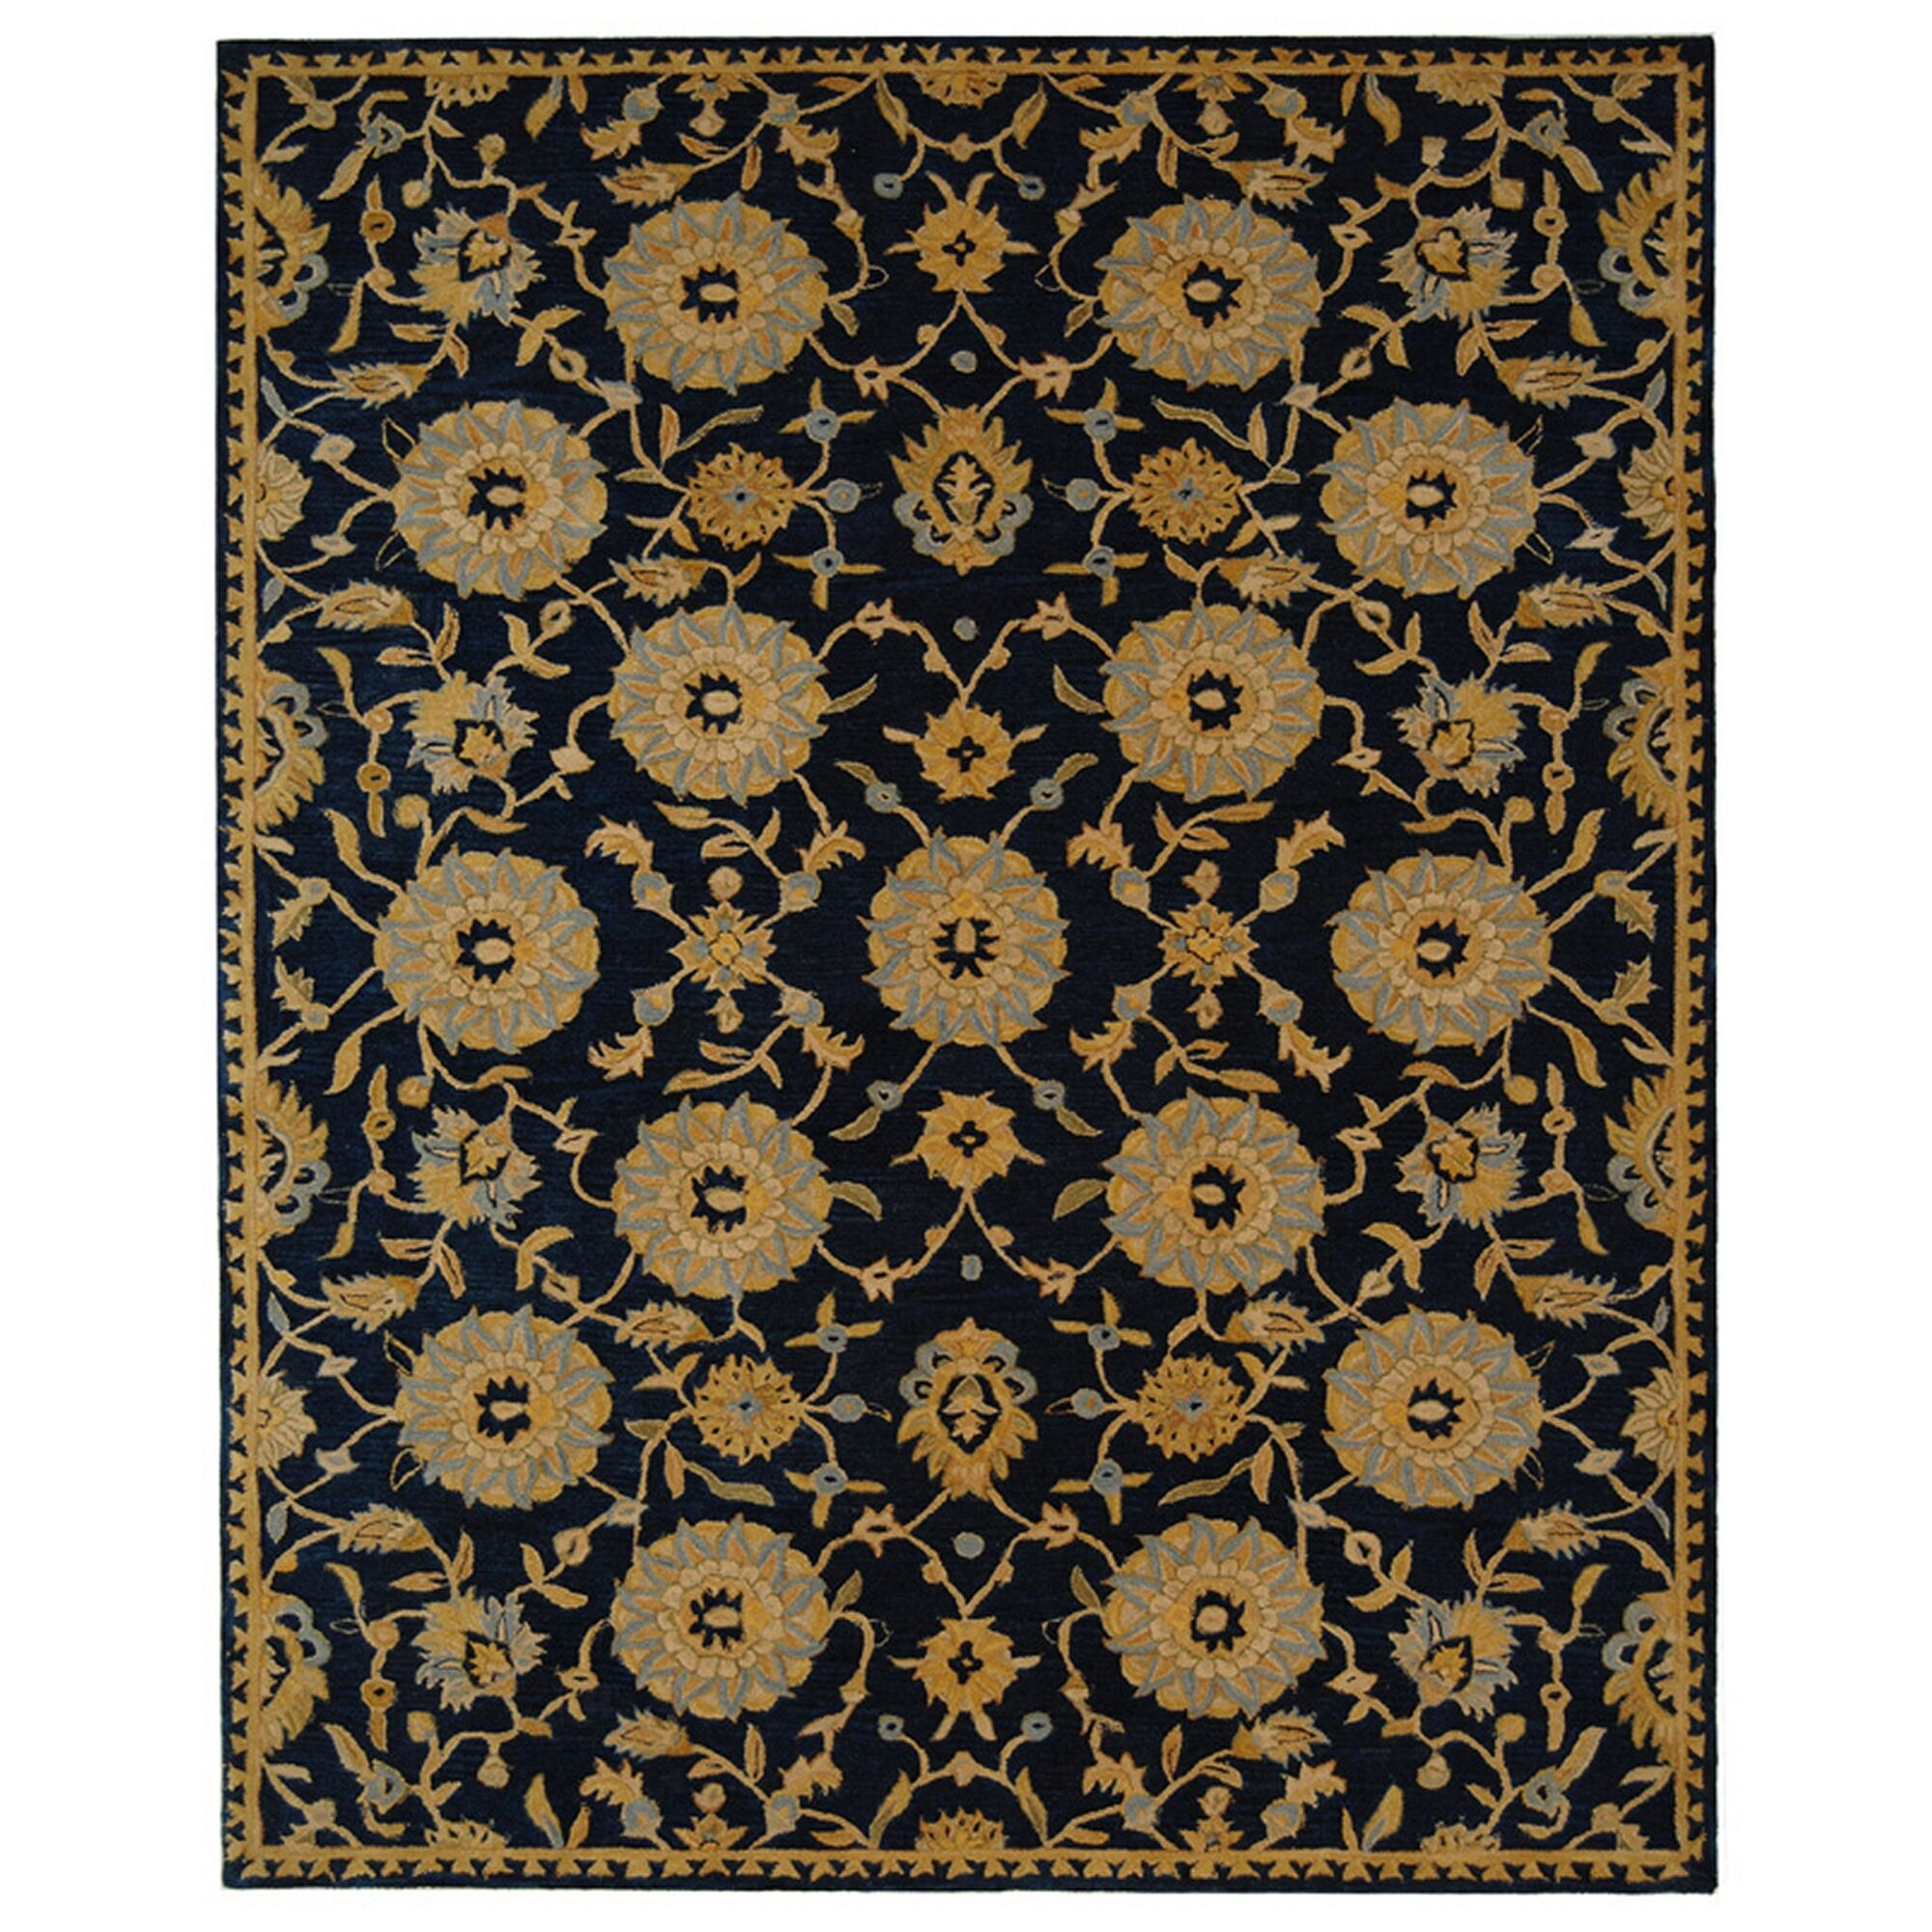 Anatolia Hand-Woven Wool Navy/Gold Area Rug Rug Size: Rectangle 8' x 10'